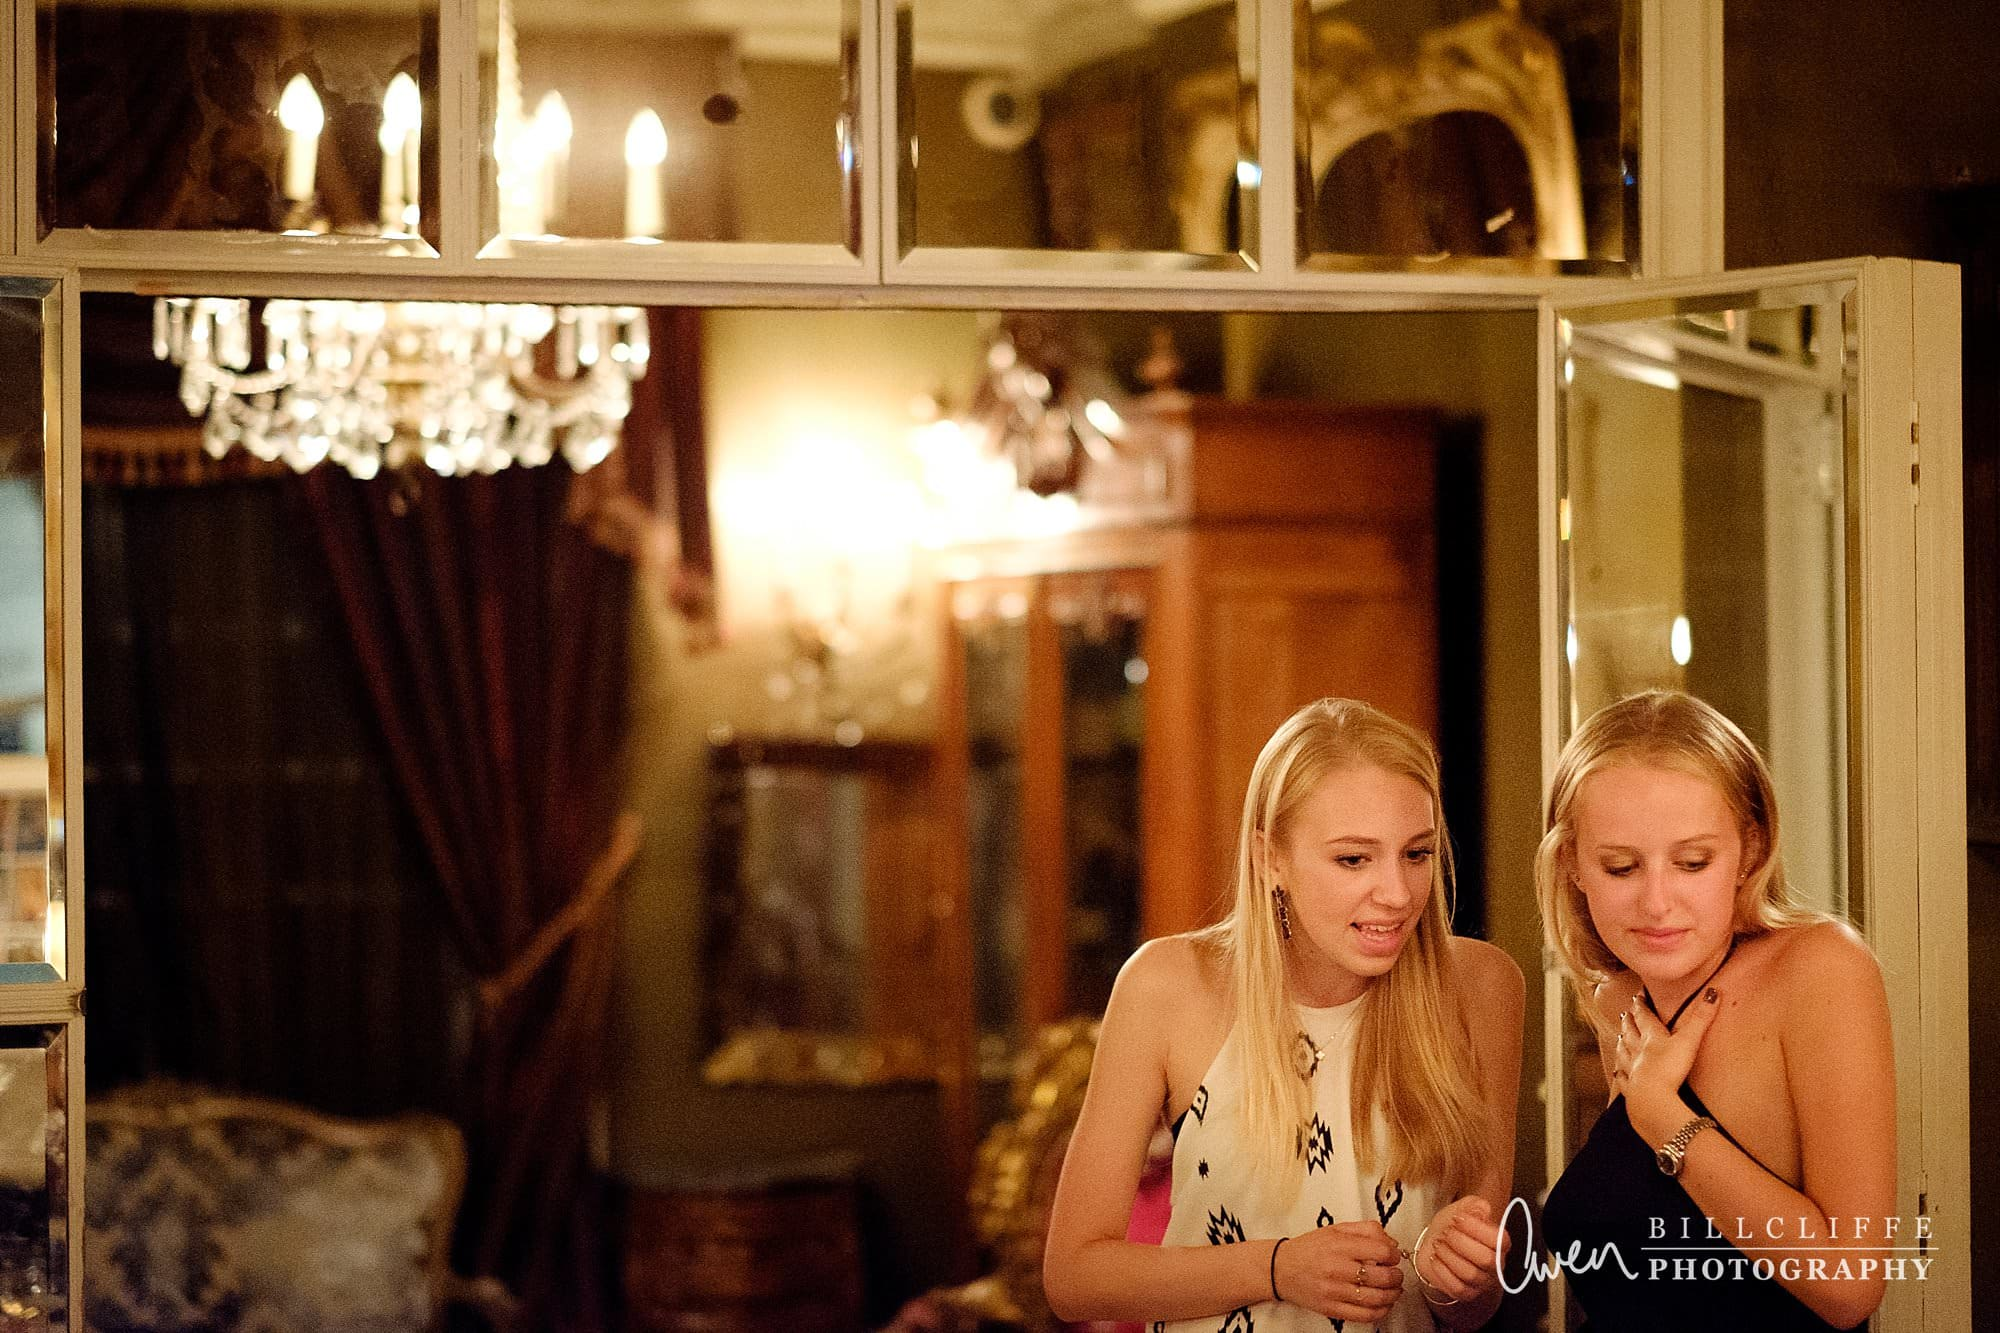 london 21st birthday photographer beach blanket babylon 032 - Cornelie's 21st Birthday at Beach Blanket Babylon